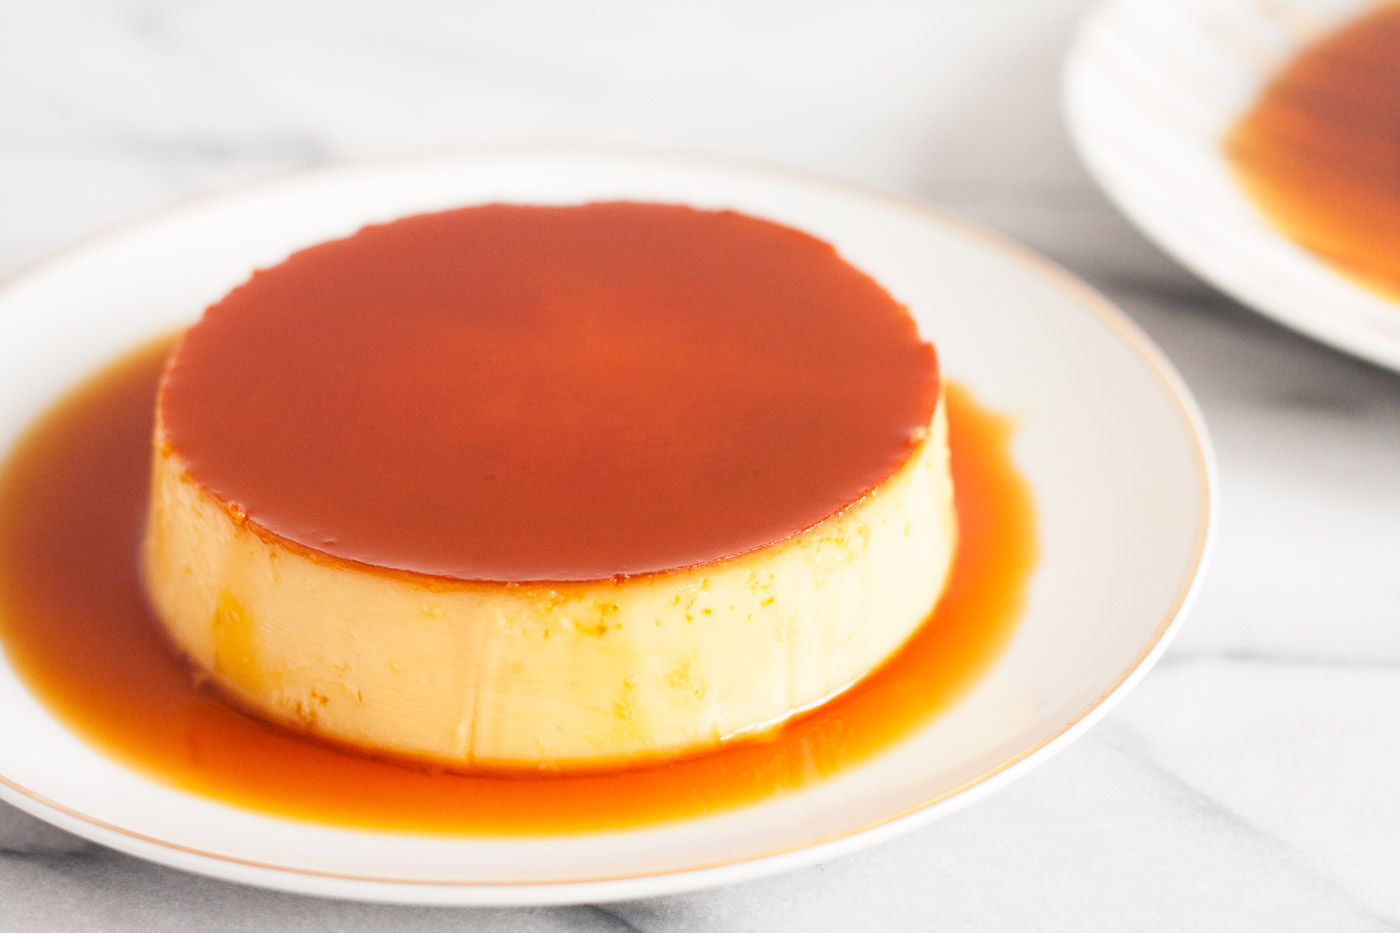 The Ultimate Creme Caramel (Leche Flan) Recipe - a perfect balance of a sweet egg custard with a slight punch of lemon. It's definitely rich, smooth, and creamy! | www.SpoonfulOfButter.com